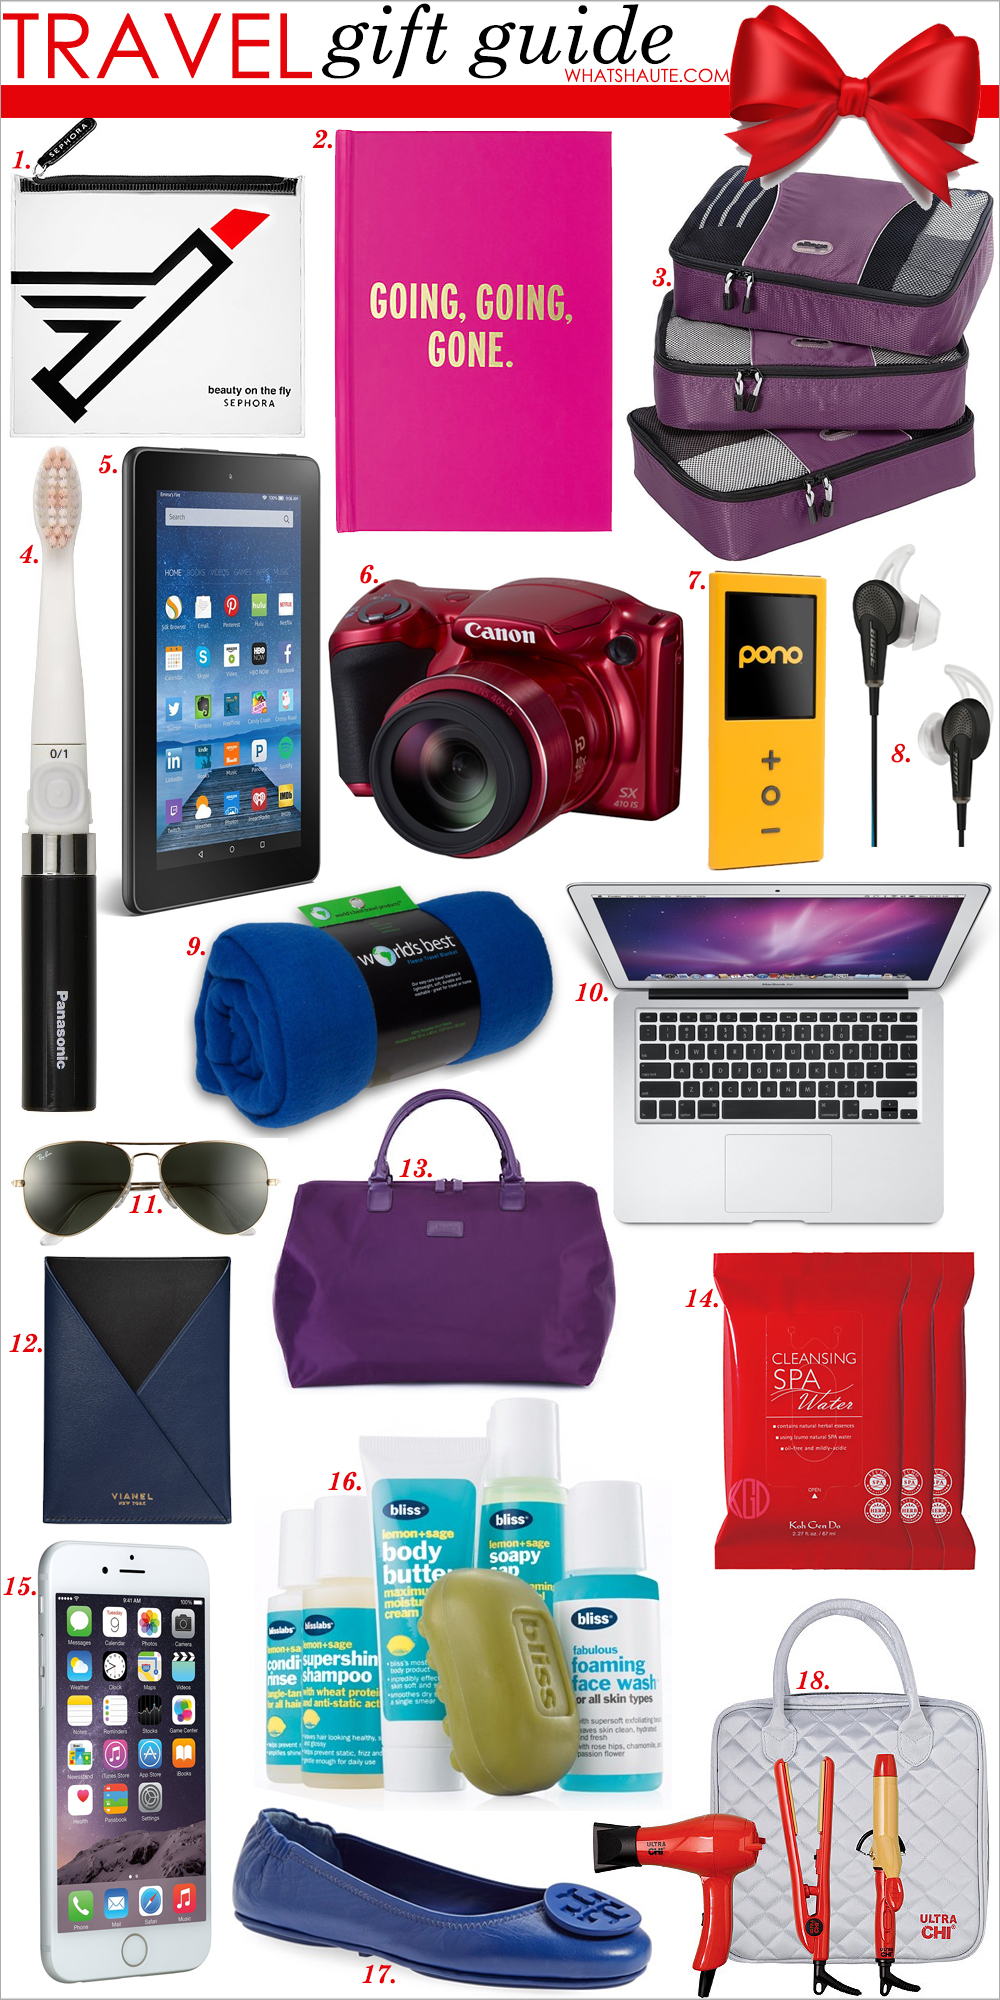 "Holiday 2015: The Jetsetter Gift Guide, travel gift guide, travel essentials guide, travel gifts, SEPHORA COLLECTION Beauty on the Fly, kate spade new york travel journal, eBags Medium Packing Cubes - 3pc Set, Panasonic EW-DS90-K Compact Battery-Powered Toothbrush, Kindle Fire HD 8 8"" HD Display Wi-Fi 8 GB, Canon PowerShot SX410 IS, Pono Music Portable Music Player - Yellow, Bose QuietComfort 20 Acoustic Noise Cancelling Headphones - Black, Apple, Samsung, Android, World's Best Cozy-Soft Microfleece Travel Blanket - Blue, Apple MJVE2LL/A MacBook Air 13.3-Inch Laptop, Ray-Ban 'Original Aviator' 58mm Sunglasses, VIANEL New York V12 Passport Cover, LIPAULT PARIS Weekend Carry-On Satchel, KOH GEN DO Cleansing Spa Water Cloths, Apple iPhone 6 16 GB - Silver, Bliss Lemon + Sage Sinkside Six Pack Travel Set, Tory Burch 'Minnie' Travel Ballet Flat with Logo, Ultra CHI Travel Tool Kit,"